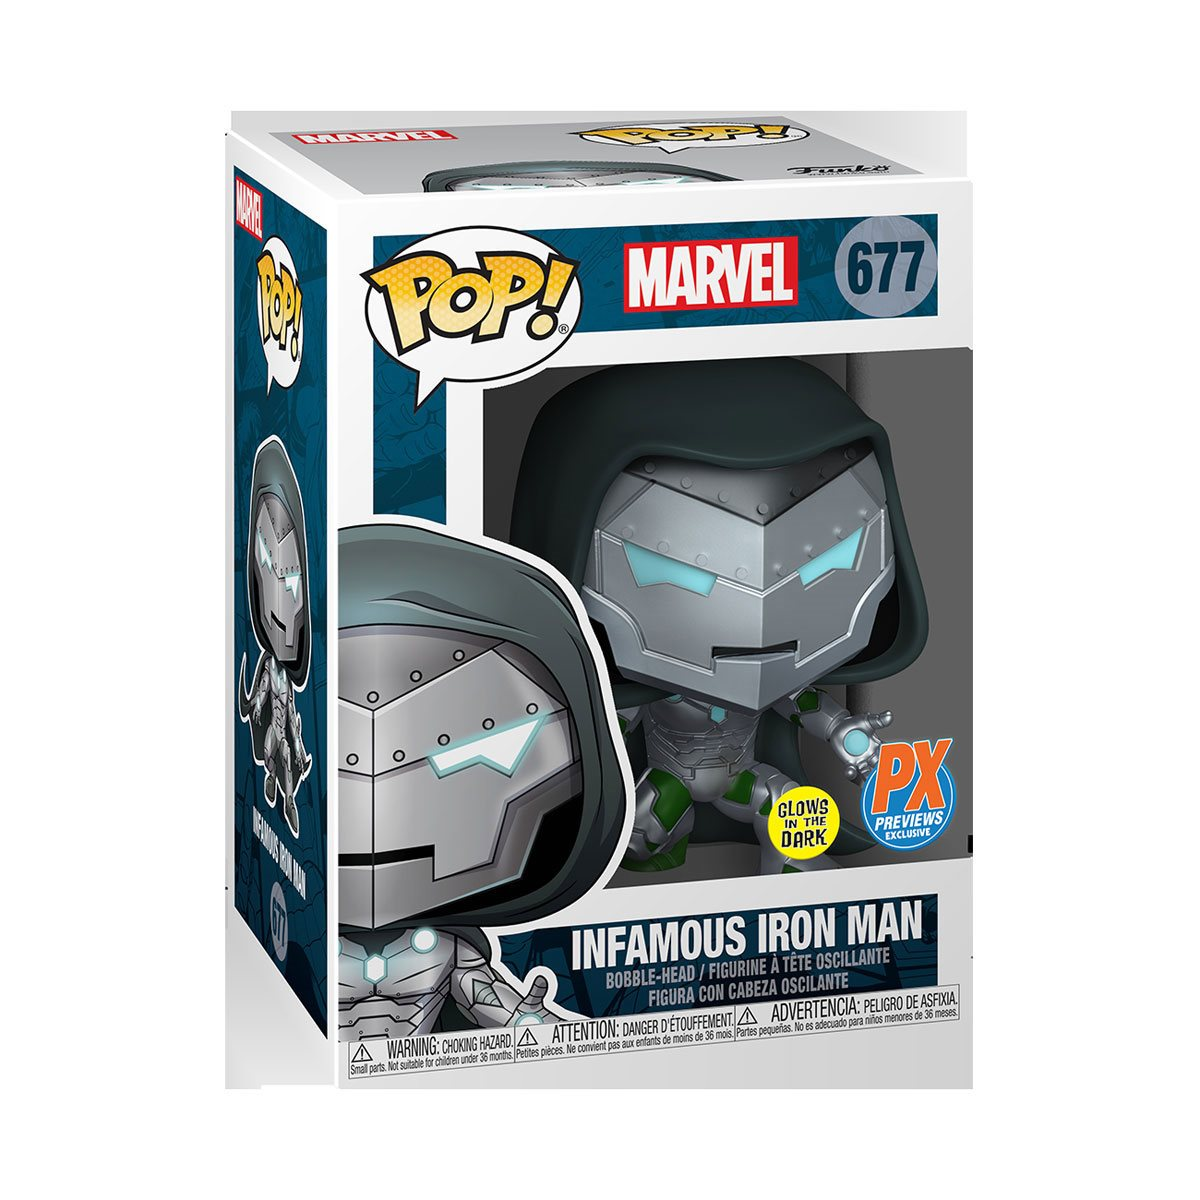 Halloween 2020 Lp Variatns Marvel Infamous Iron Man Pop! Vinyl Figure and Avengers #35